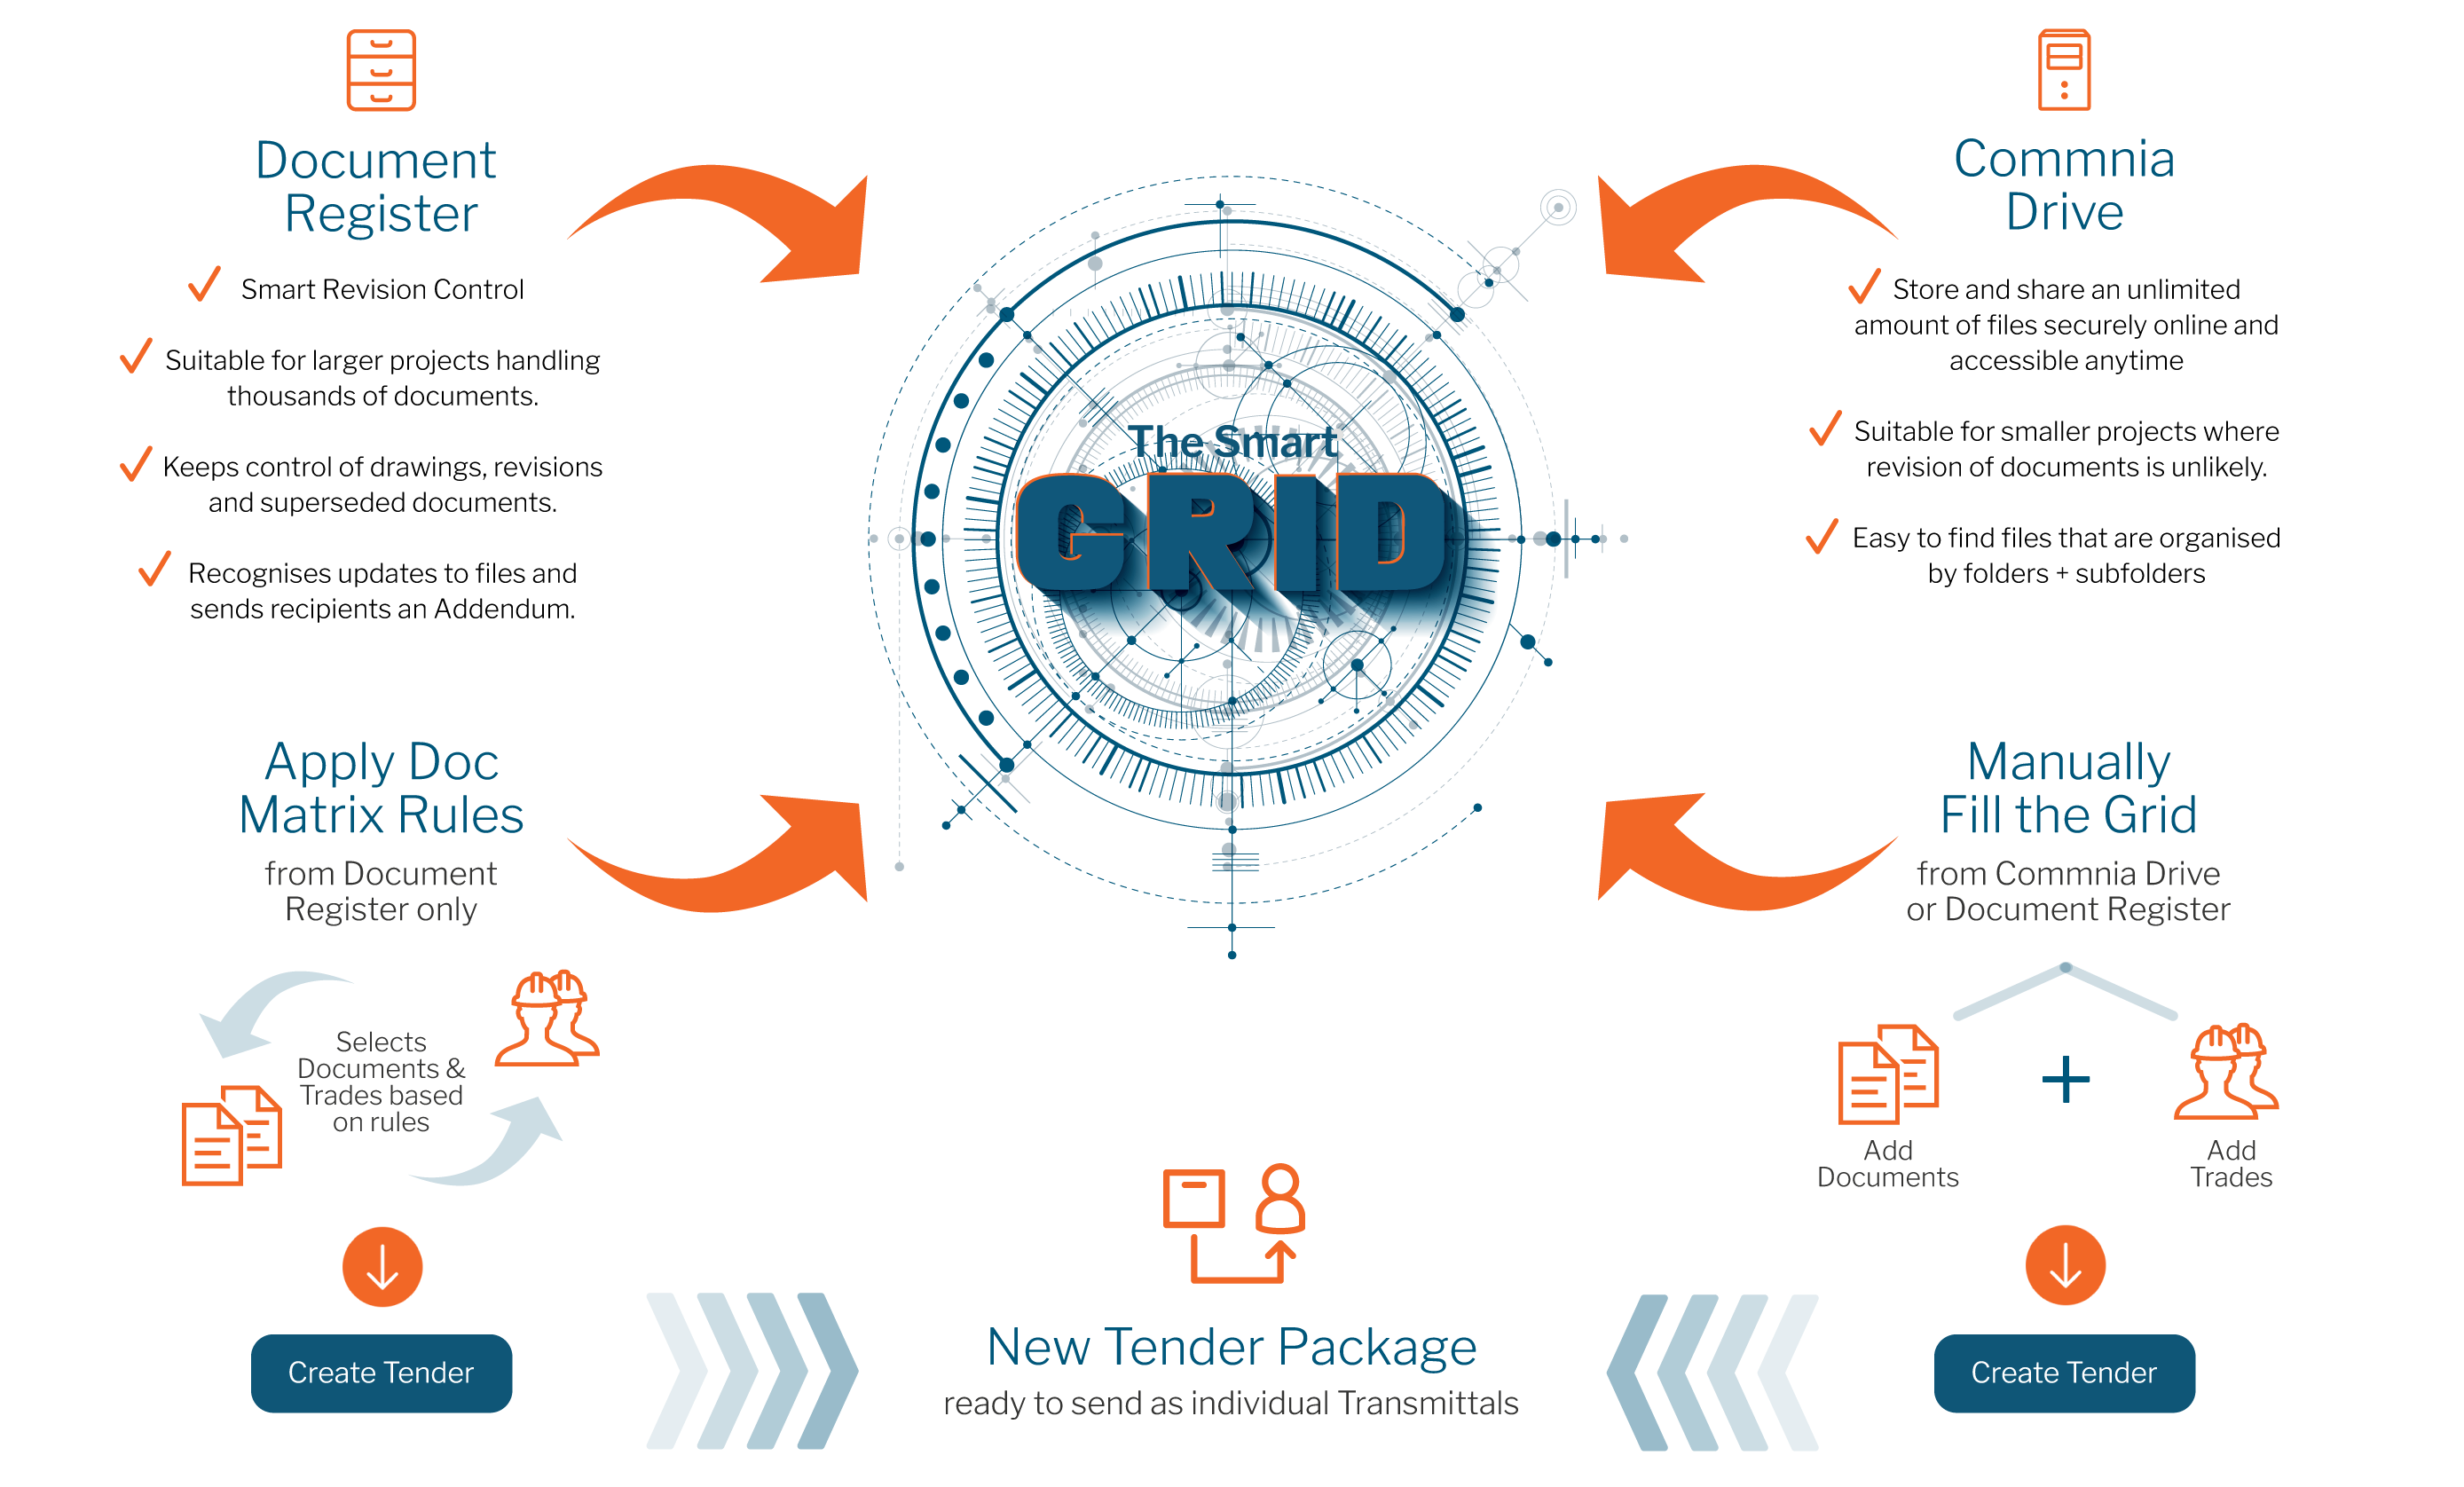 The Smart Grid designed by Commnia to create tender and transmittal packages in minutes